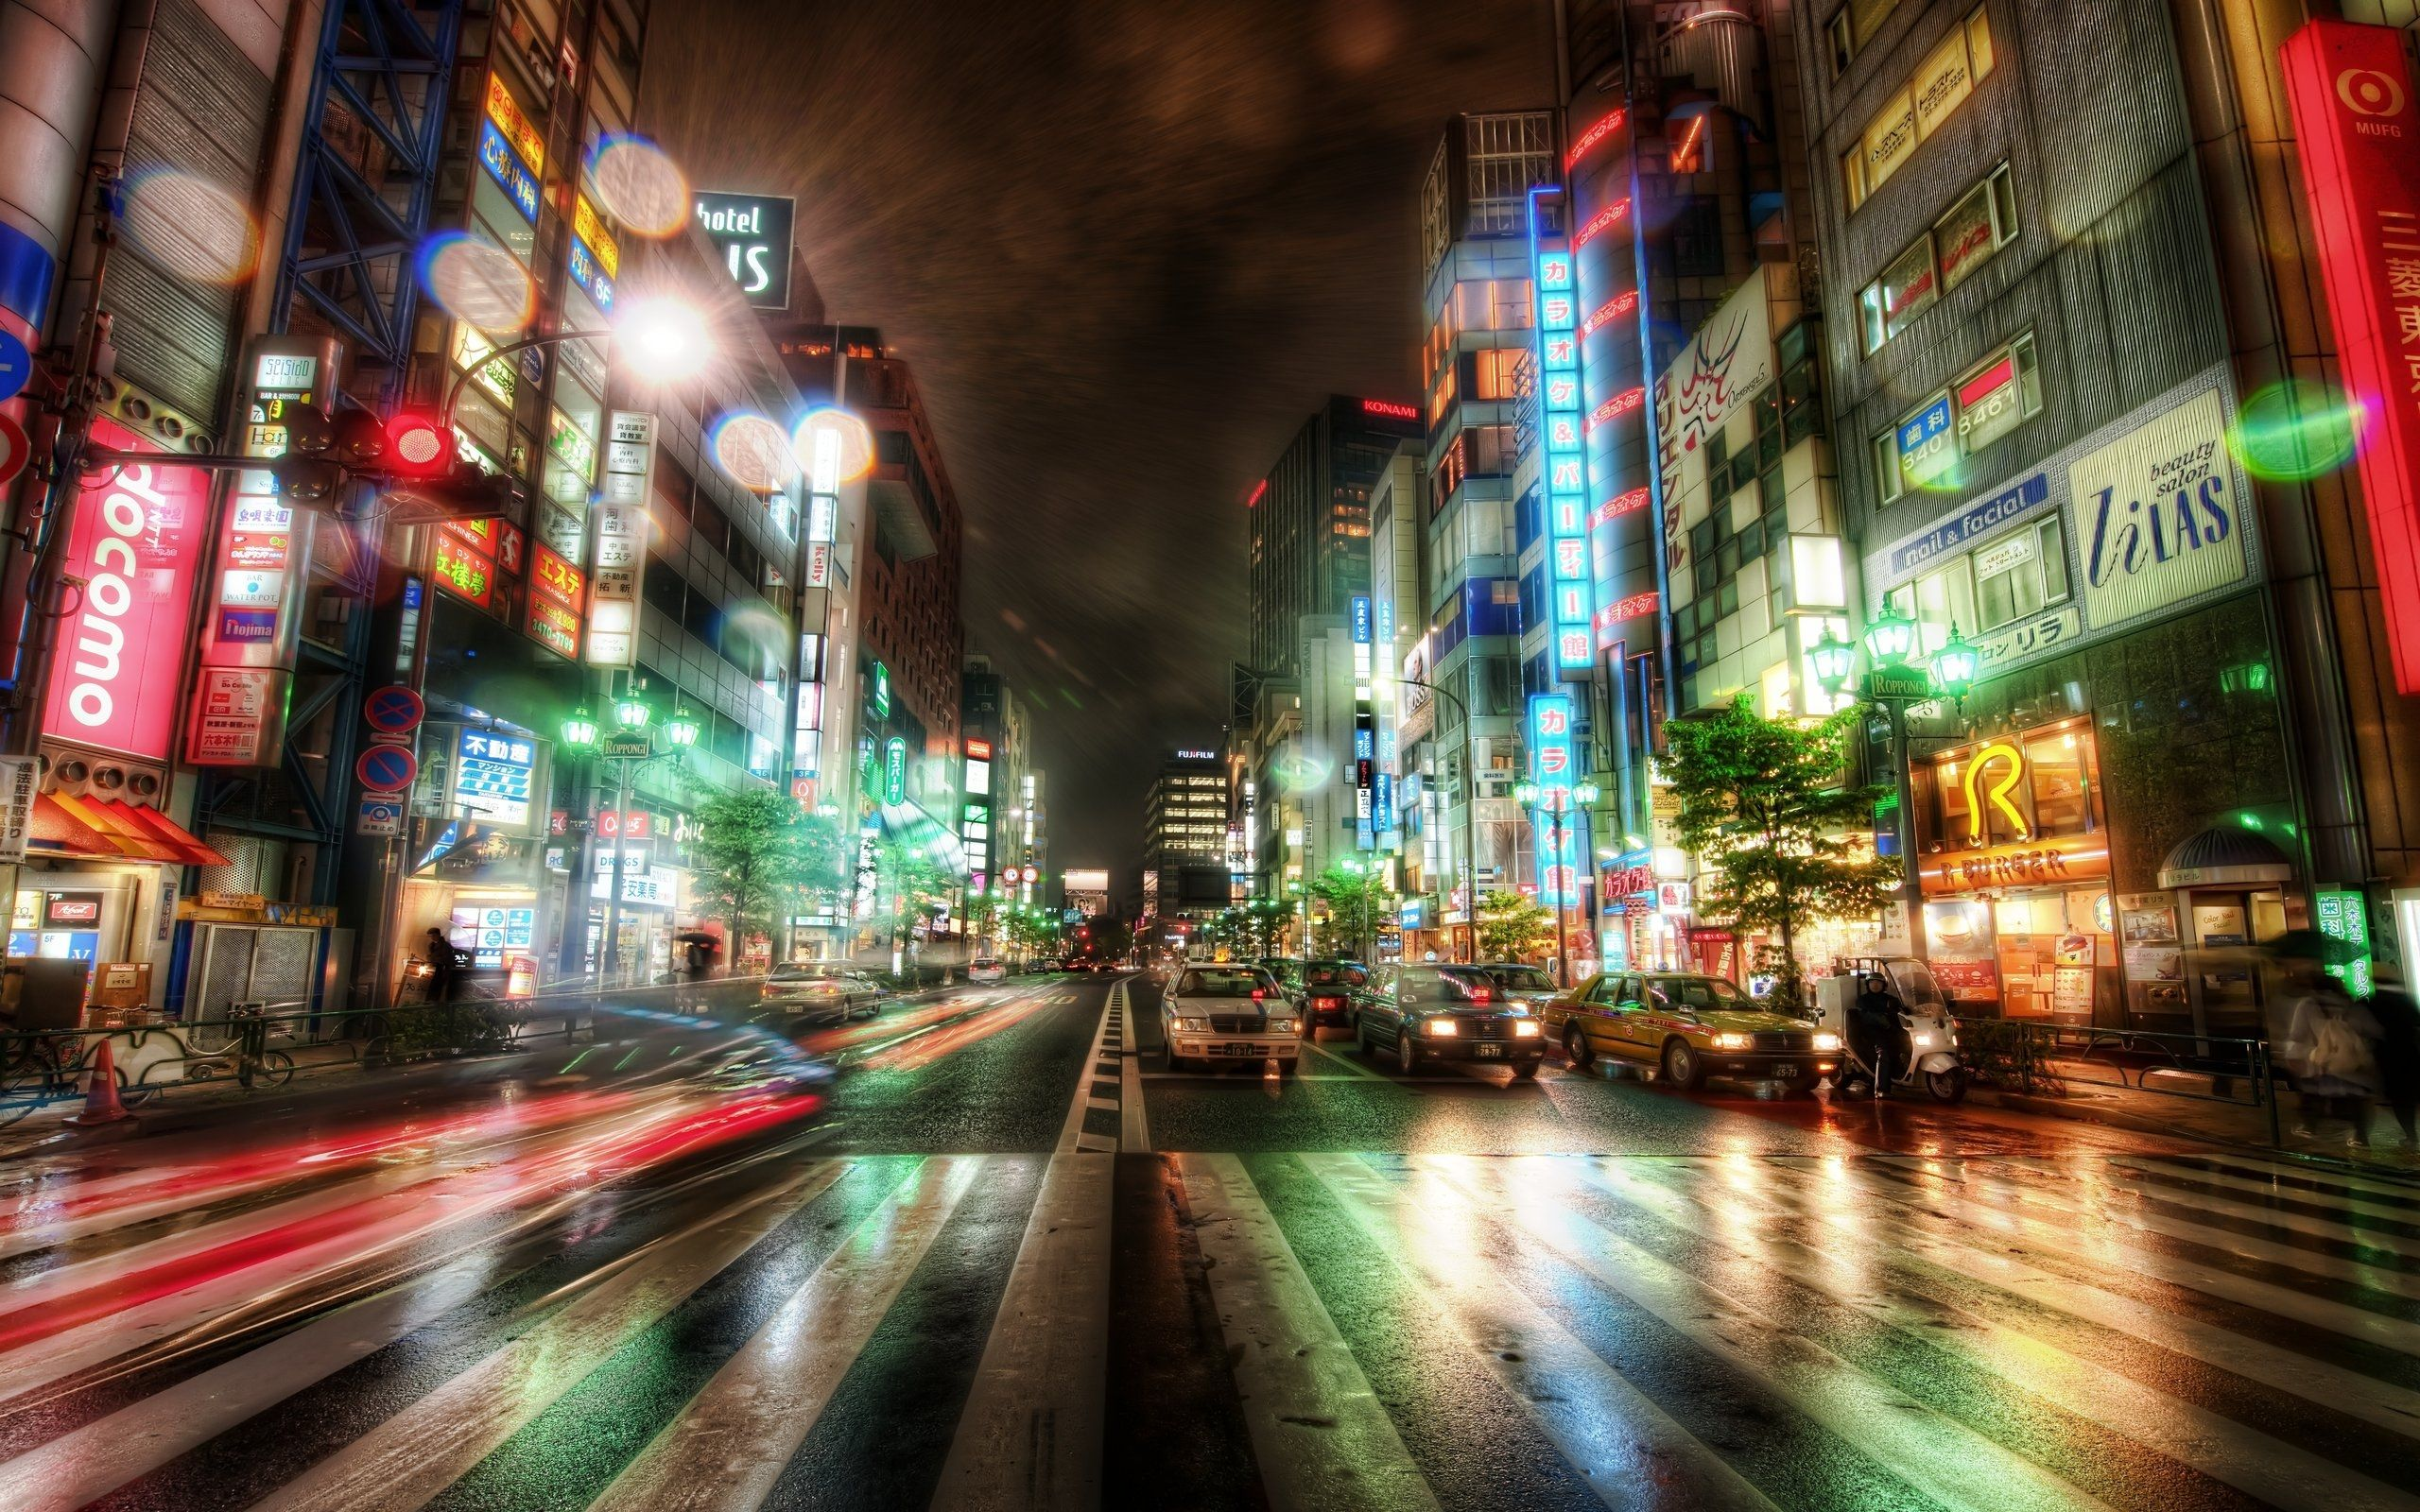 Tokyo Japan Animation Wallpapers Top Free Tokyo Japan Animation Backgrounds Wallpaperaccess